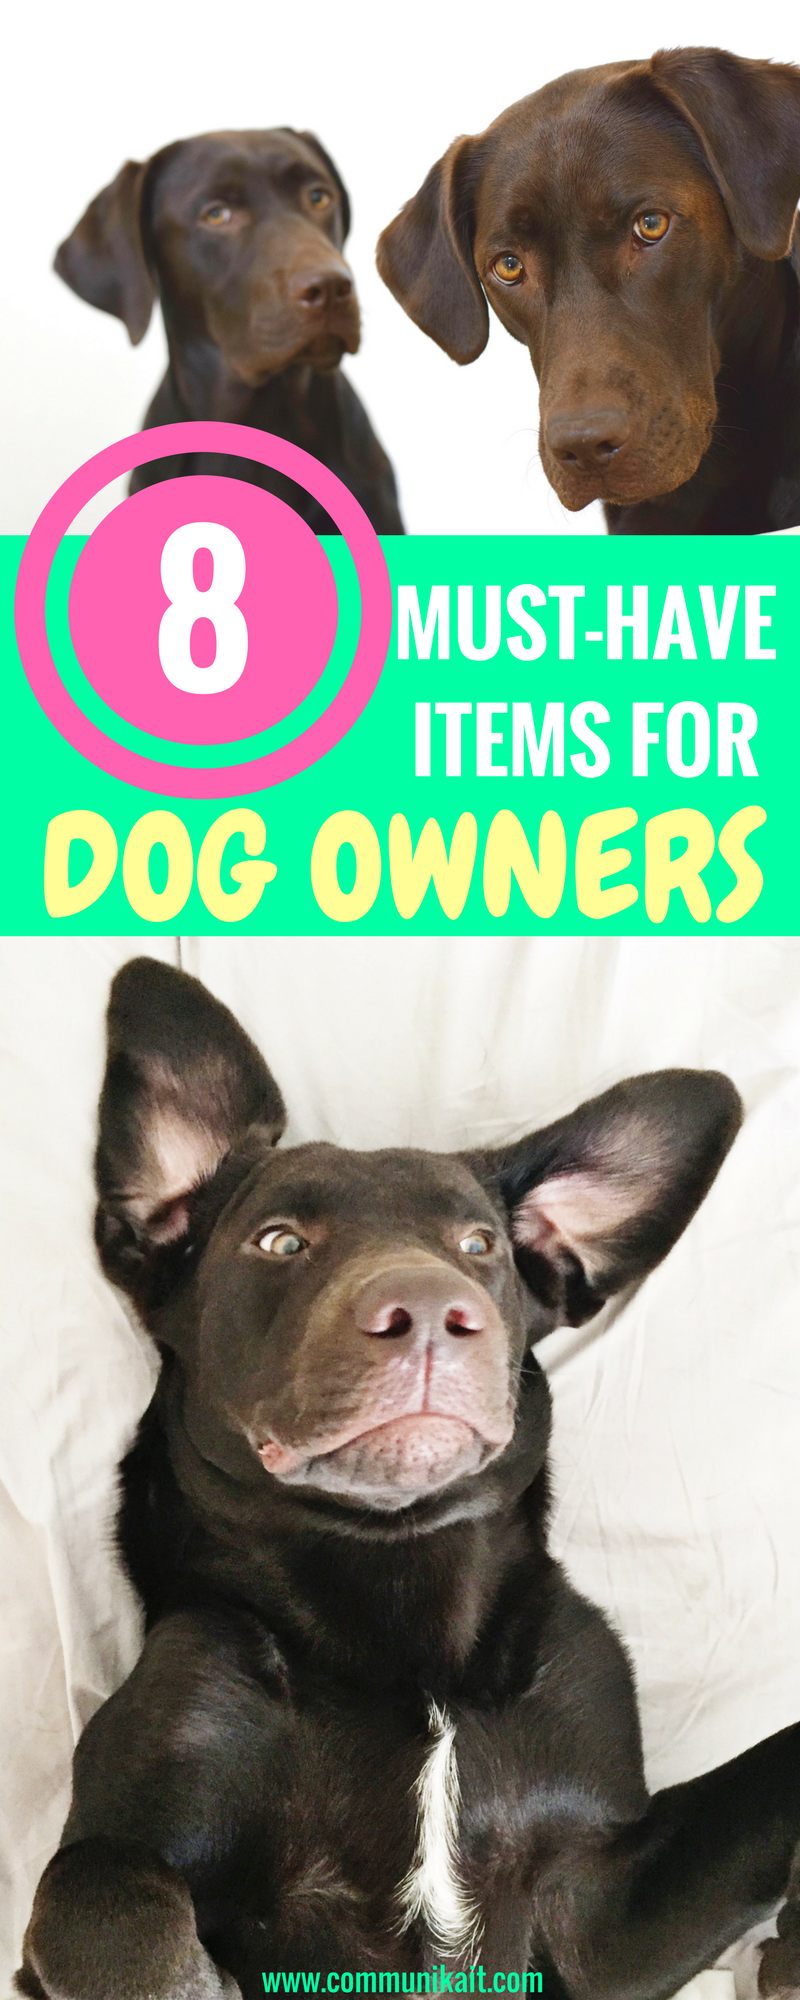 8 Essentials For Dog Owners - Life Hacks For Dog Owners - Tips For Pets - Puppy Tips - Life Hacks For Dogs - Puppy Tips - Dog Care - Communikait by Kait Hanson - Chocolate Labrador